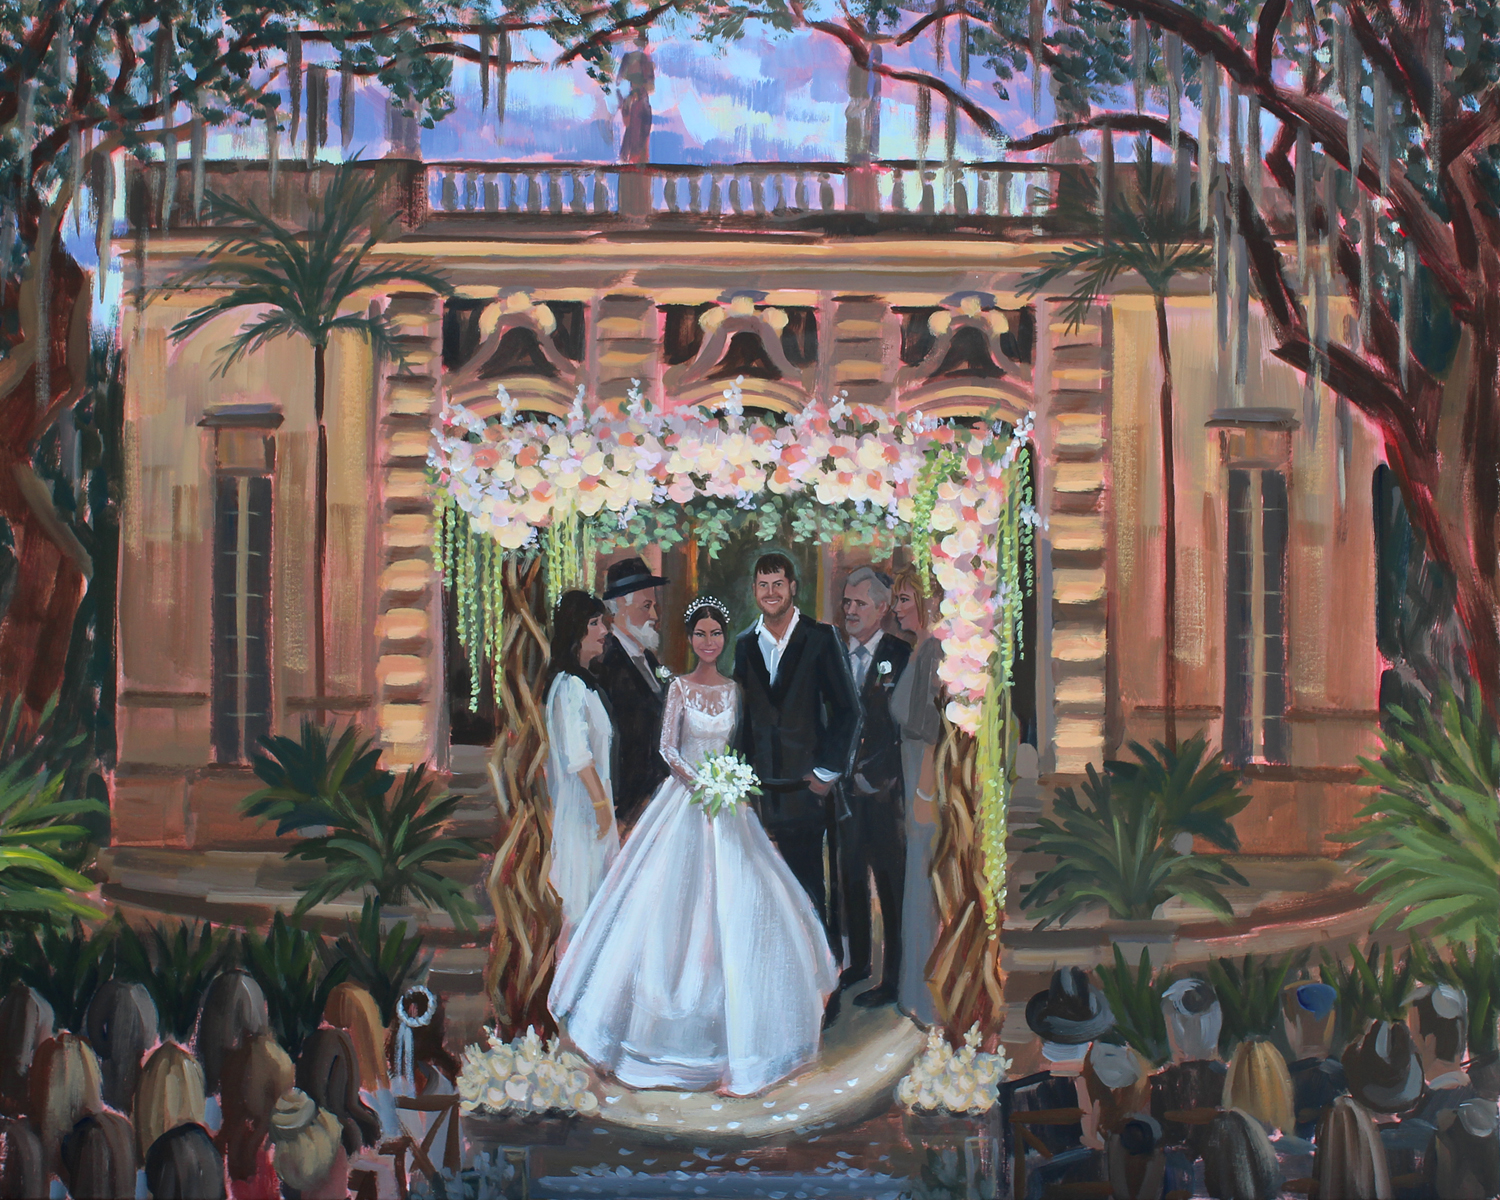 live-wedding-painting-vizcaya-museum-miami